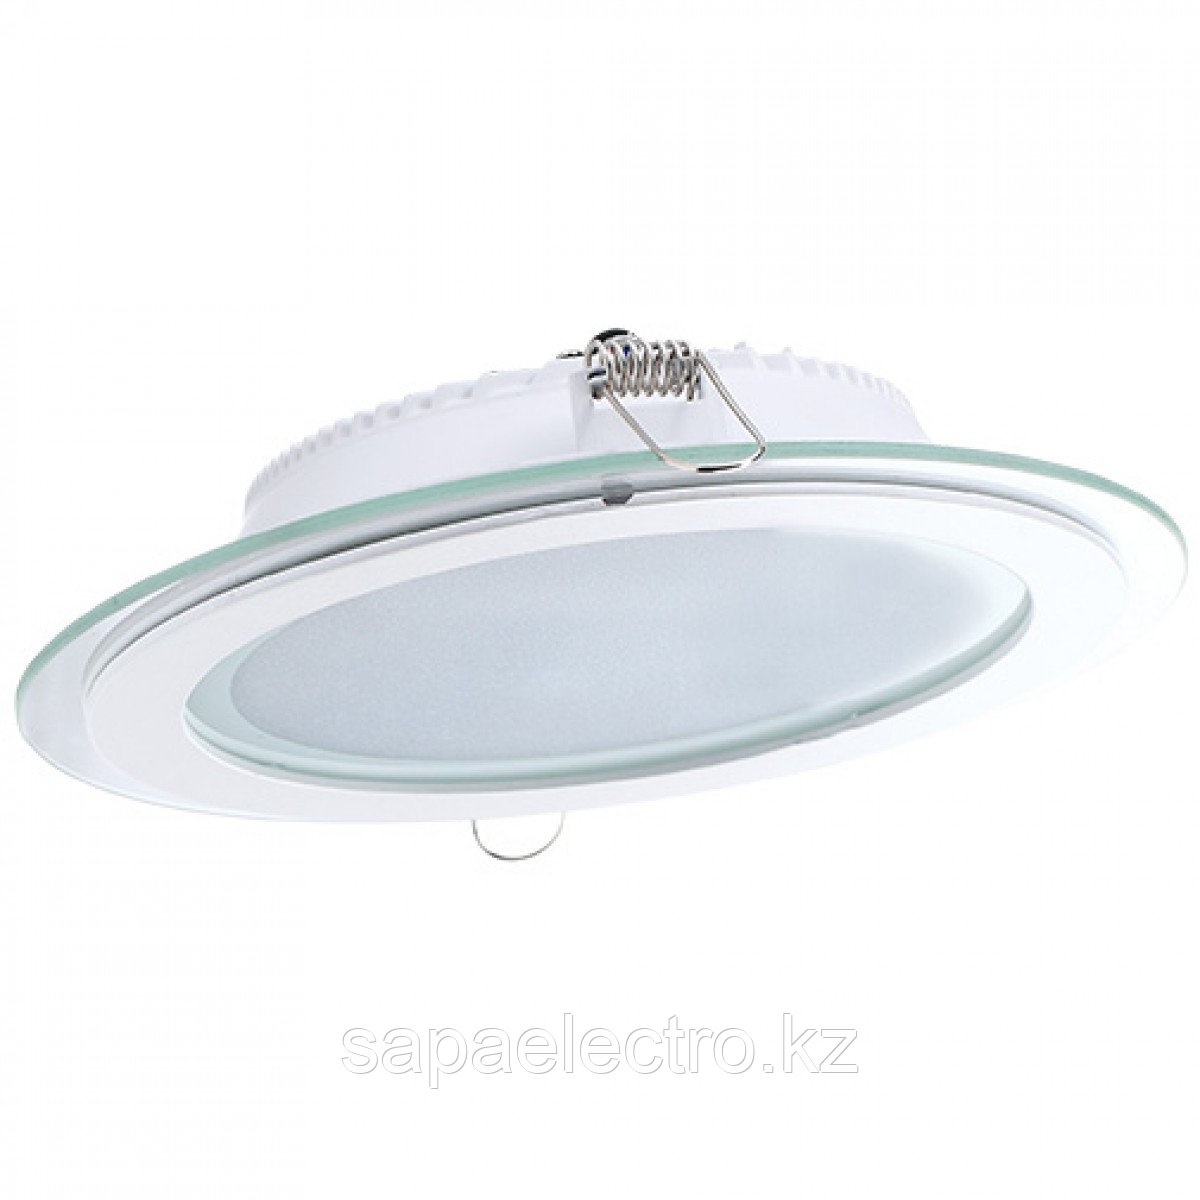 Свет-к DL LED GLASS ROUND PANEL 18W 6000K (TS)20шт,